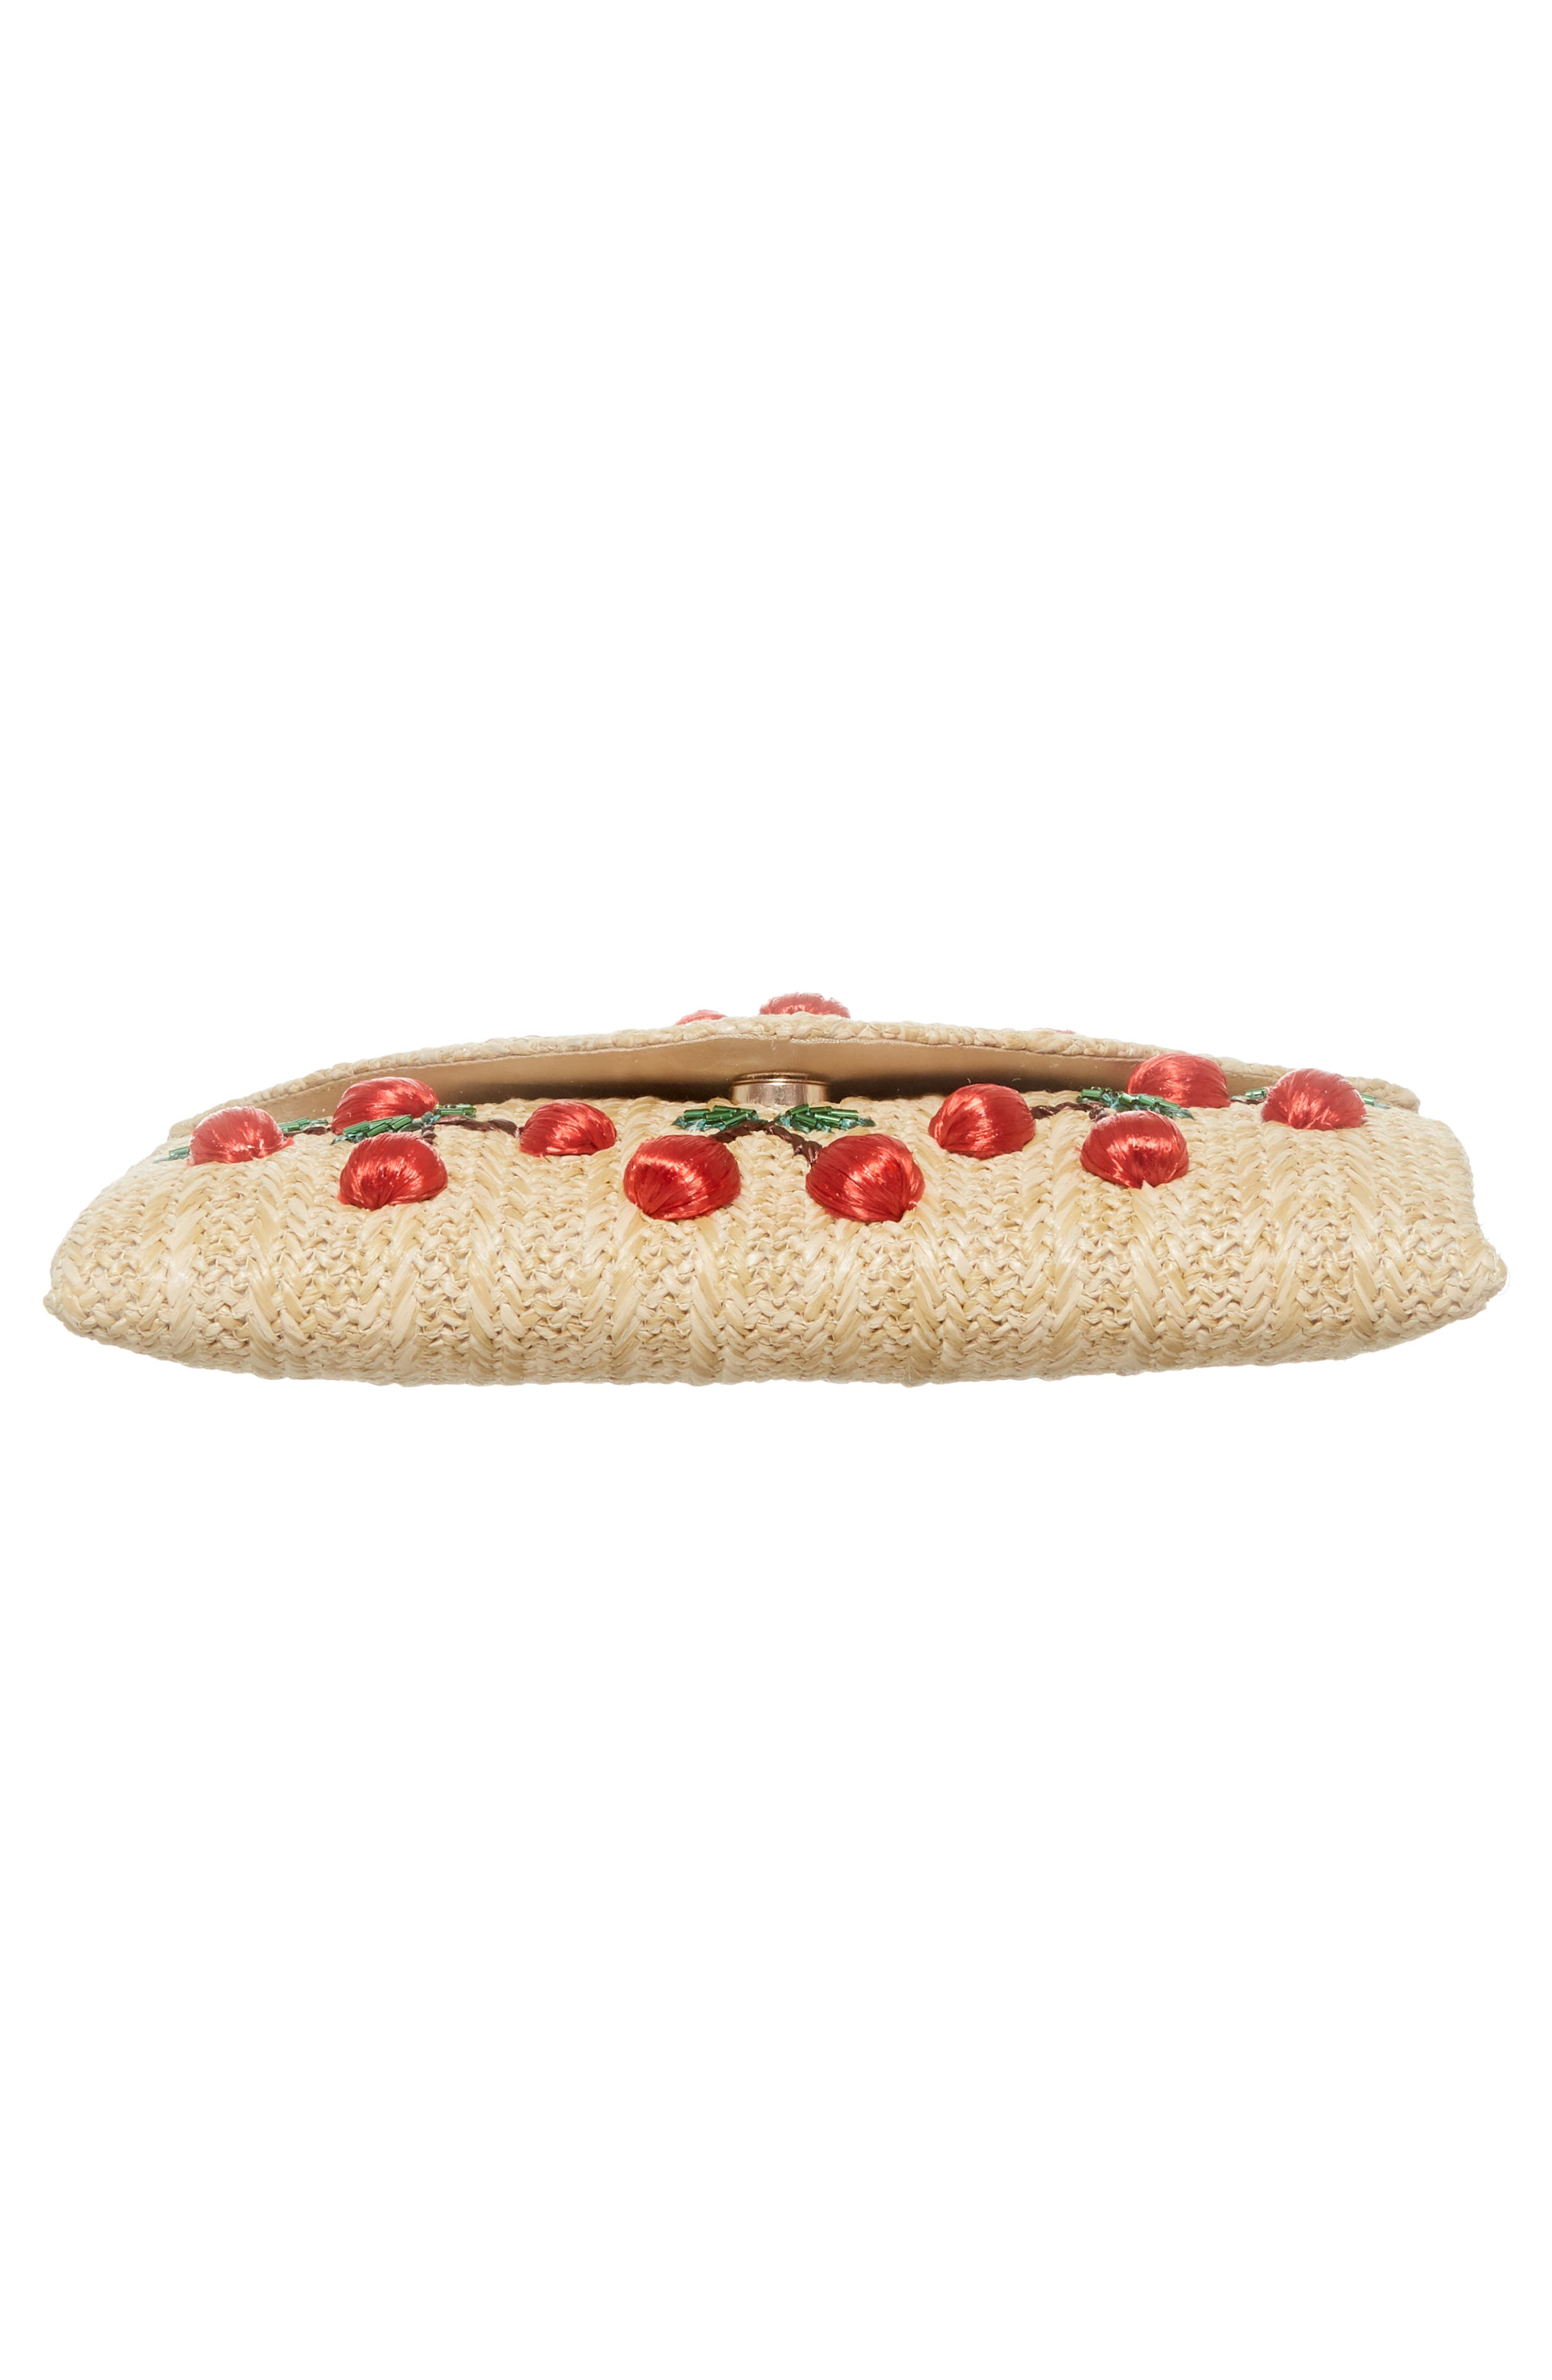 Cherry Embellished Straw Envelope Clutch,                             Alternate thumbnail 6, color,                             Natural